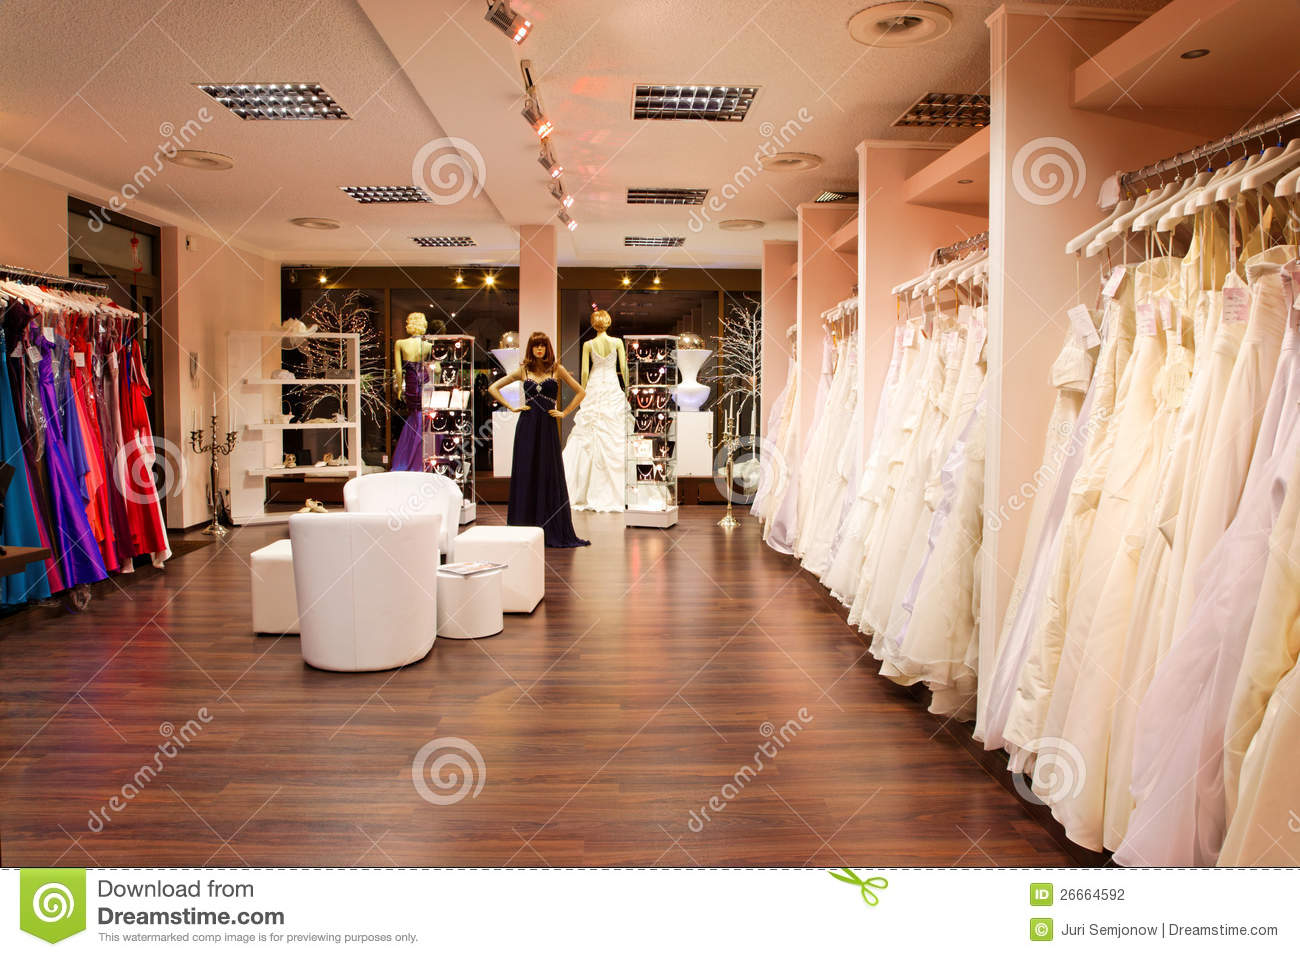 The Bridal Shop. Stock Photography - Image: 26664592